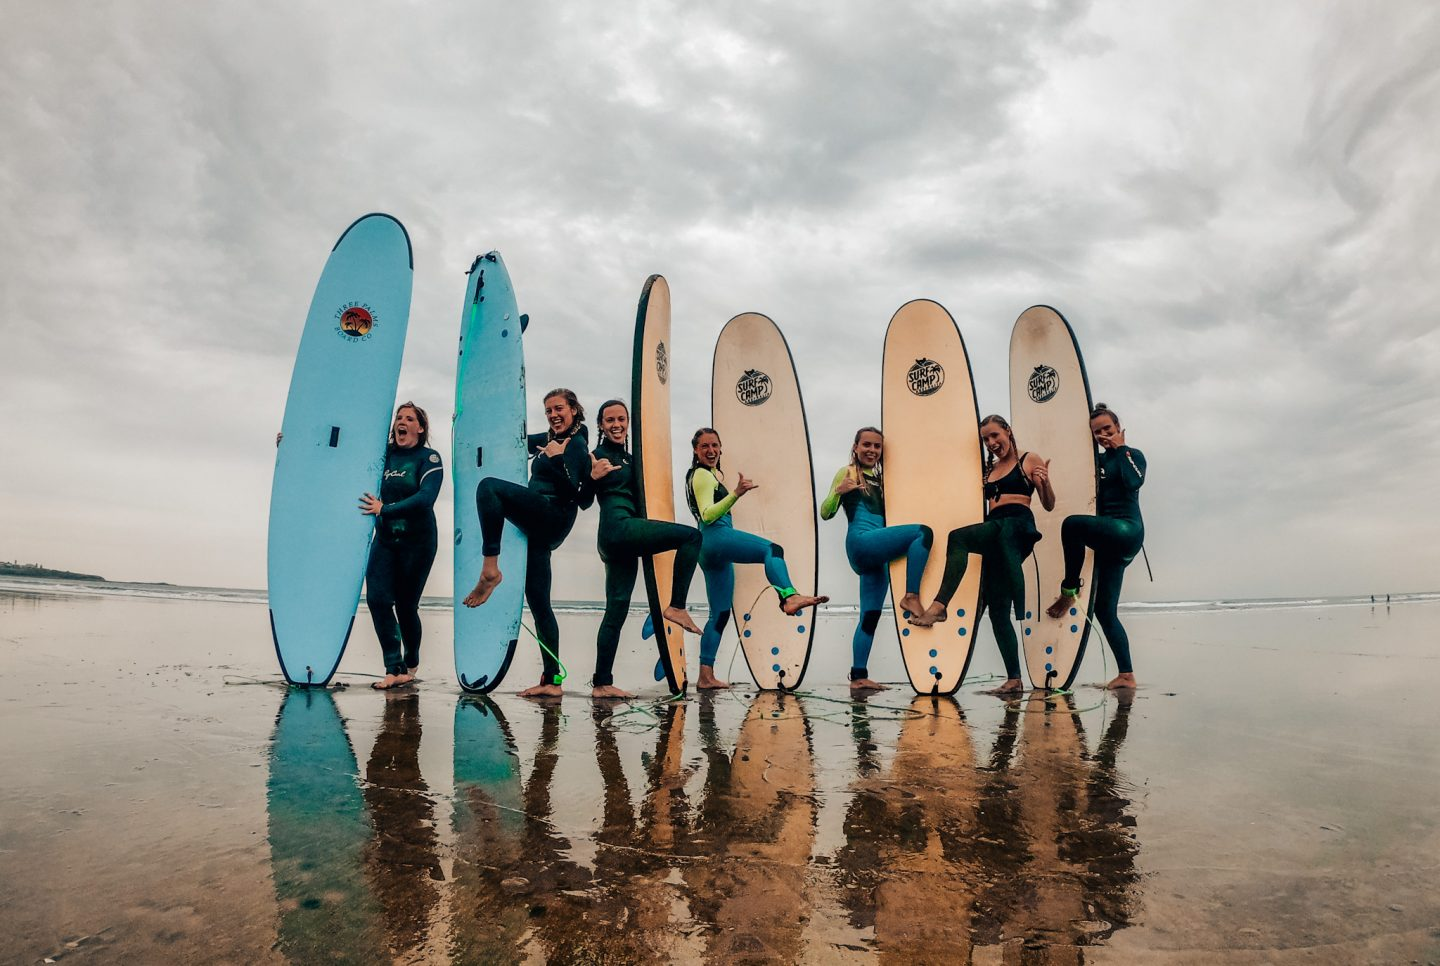 Girls pose with surfboards on a beach in Australia